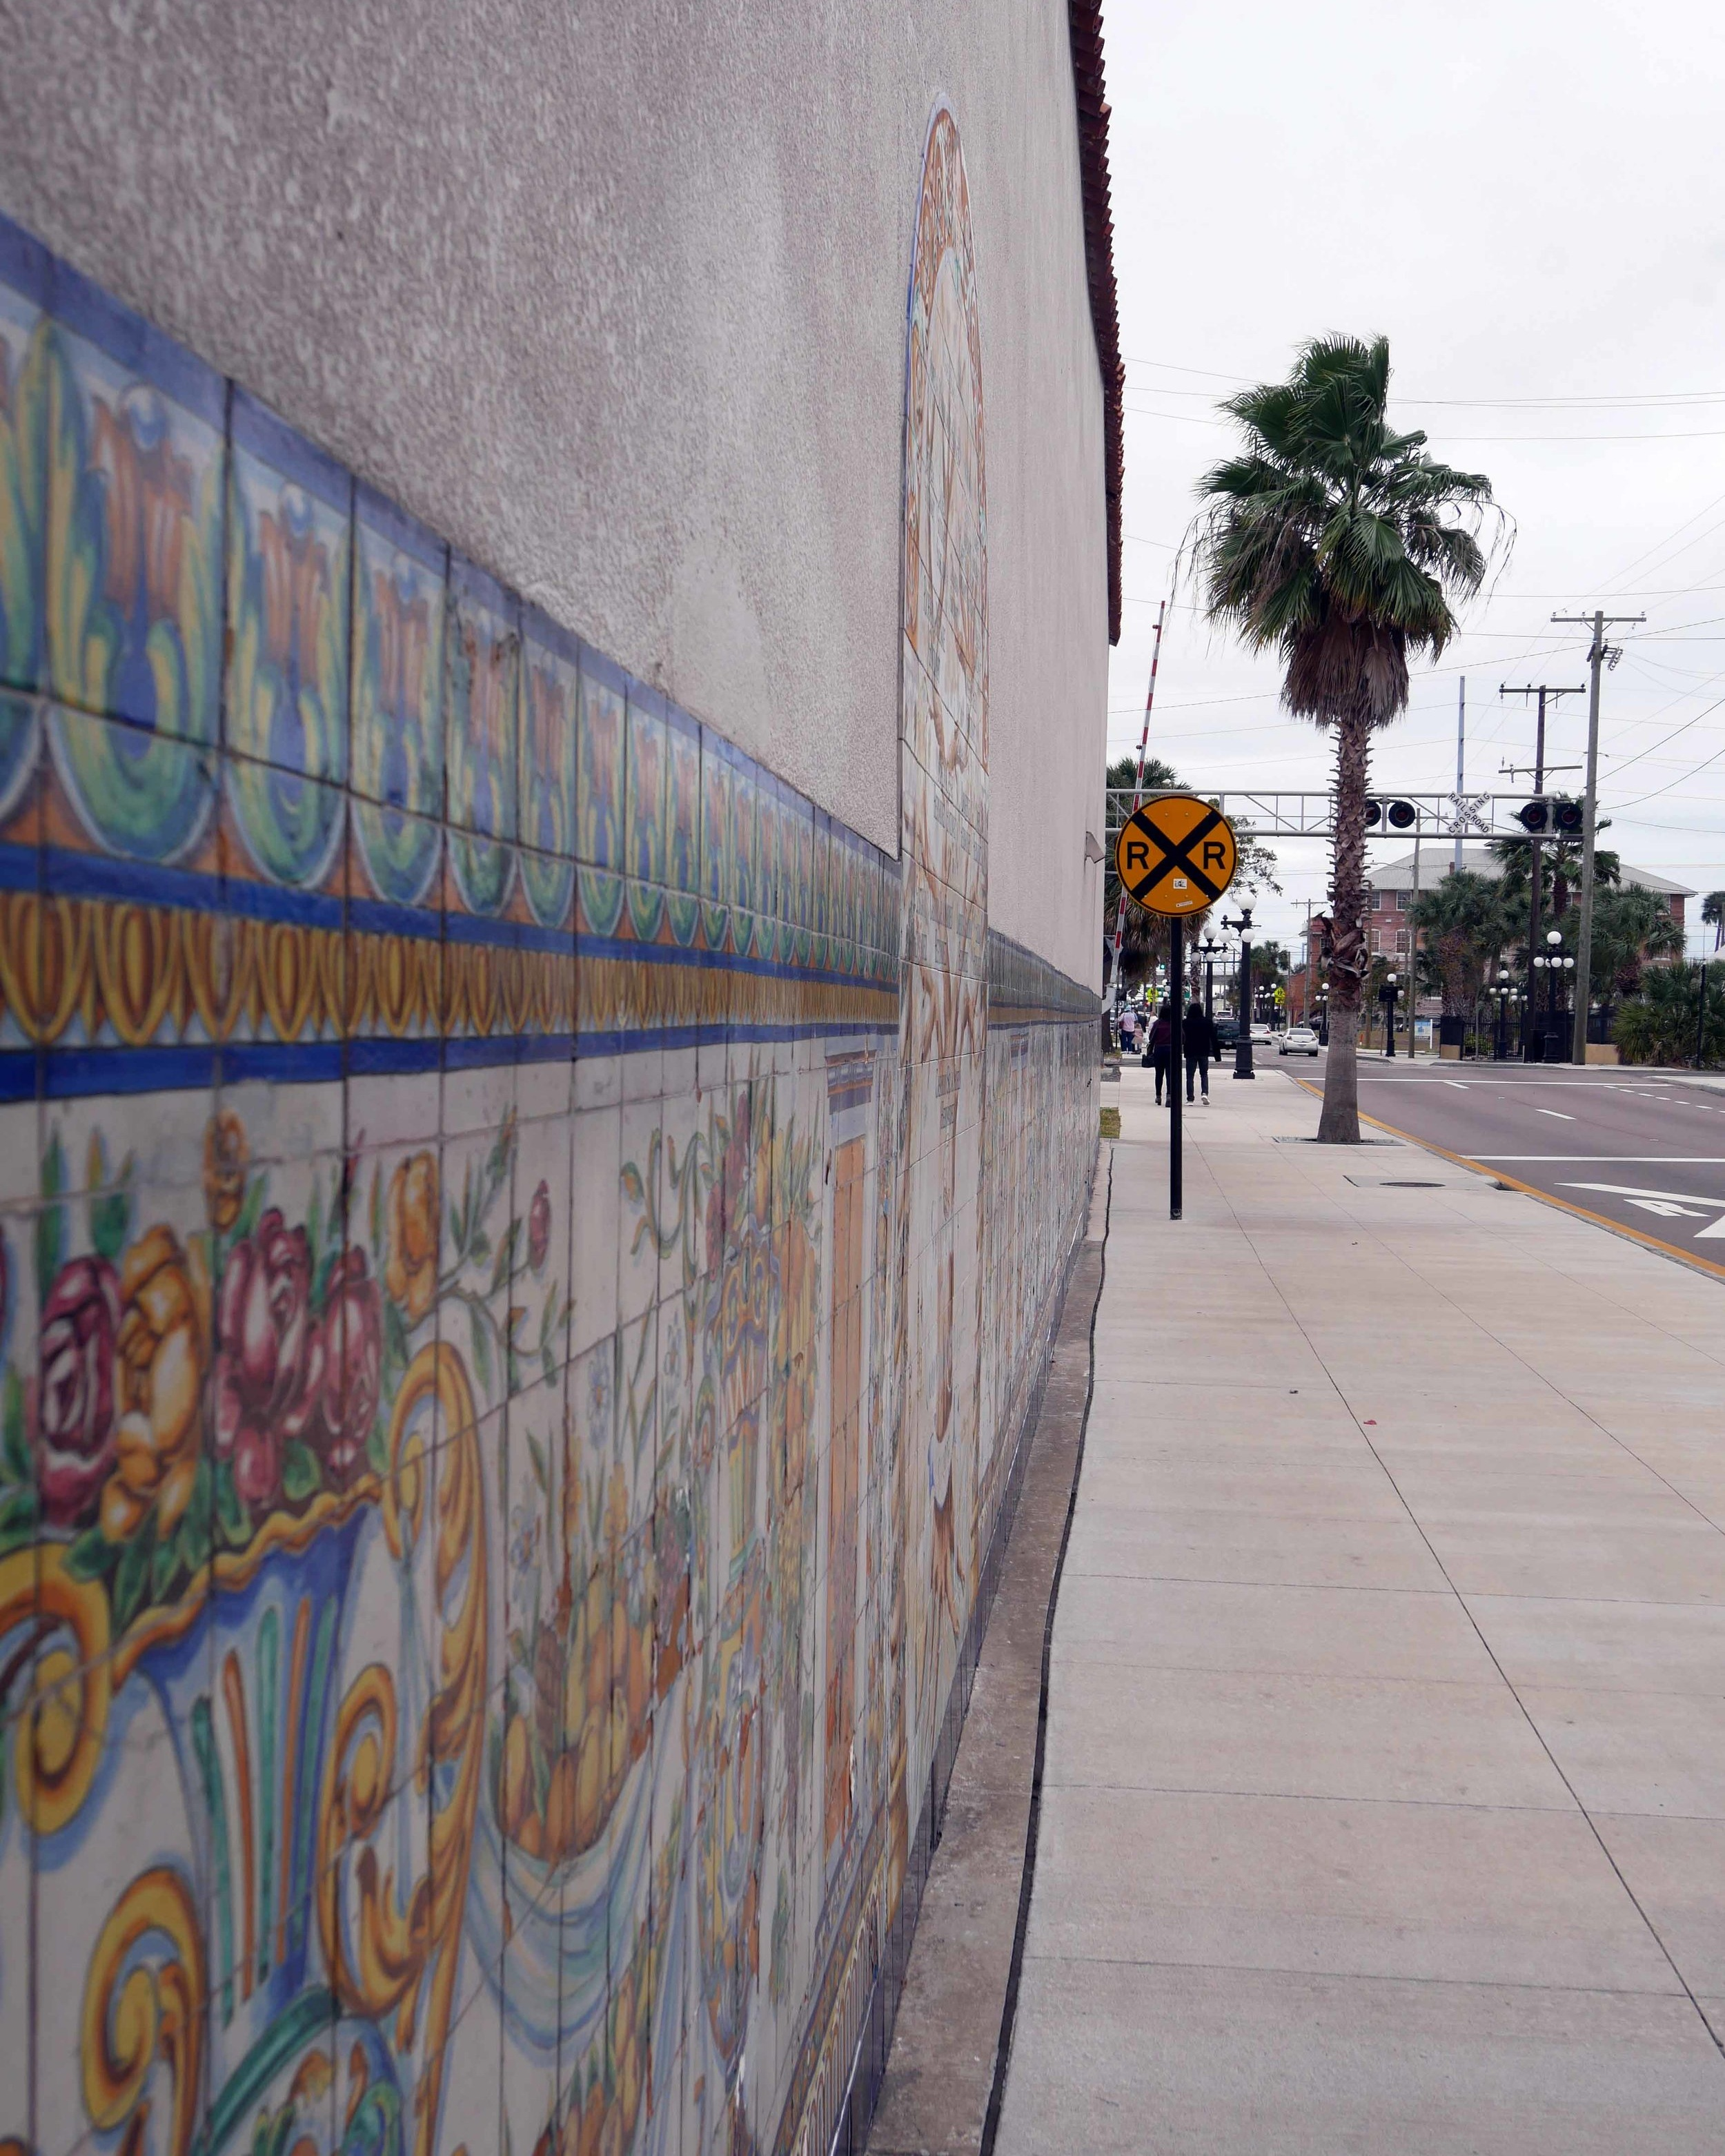 Strolling the streets of Ybor City, the city's historic district and one of the best places to visit in downtown Tampa